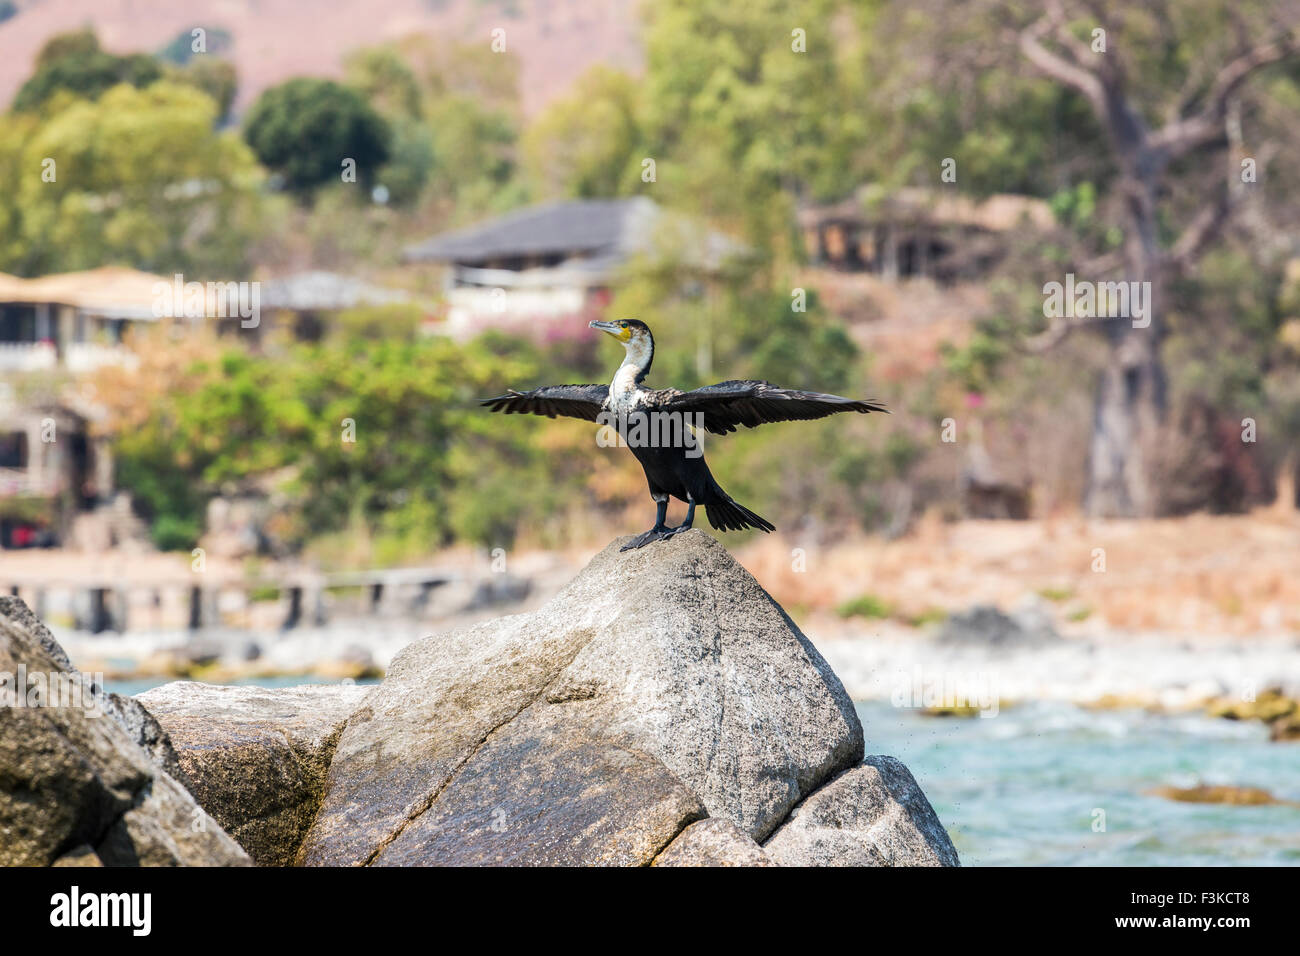 White-breasted cormorant (Phalacrocorax lucidus), a common water bird with outstretched wings, perched on a rock, - Stock Image